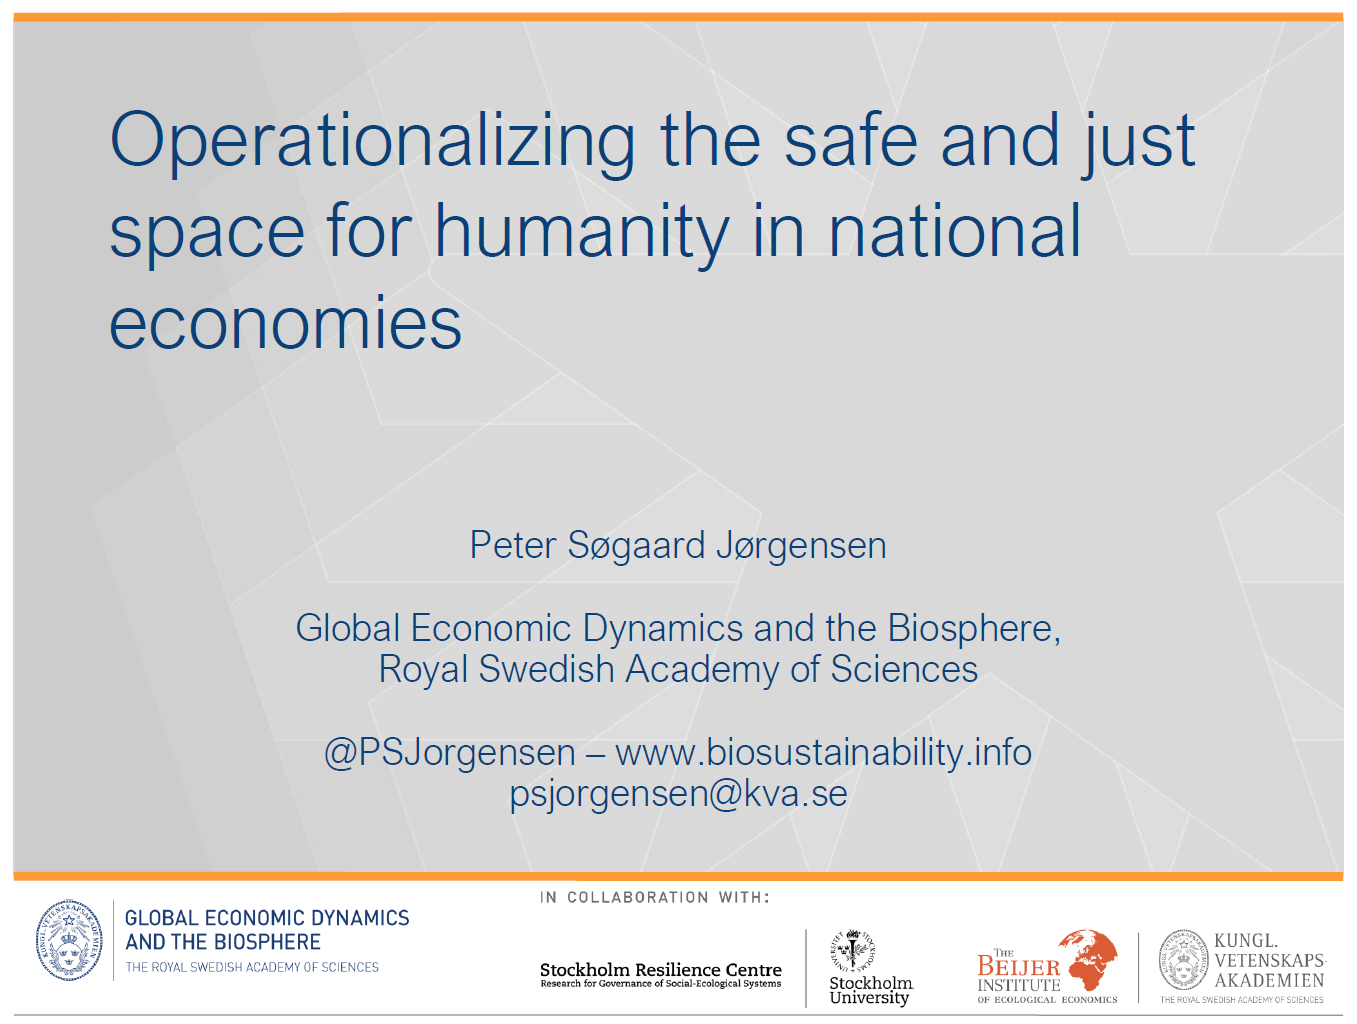 Check out a talk I gave on the project at the International Ecological Economic Conference in Washington DC,June 2016.